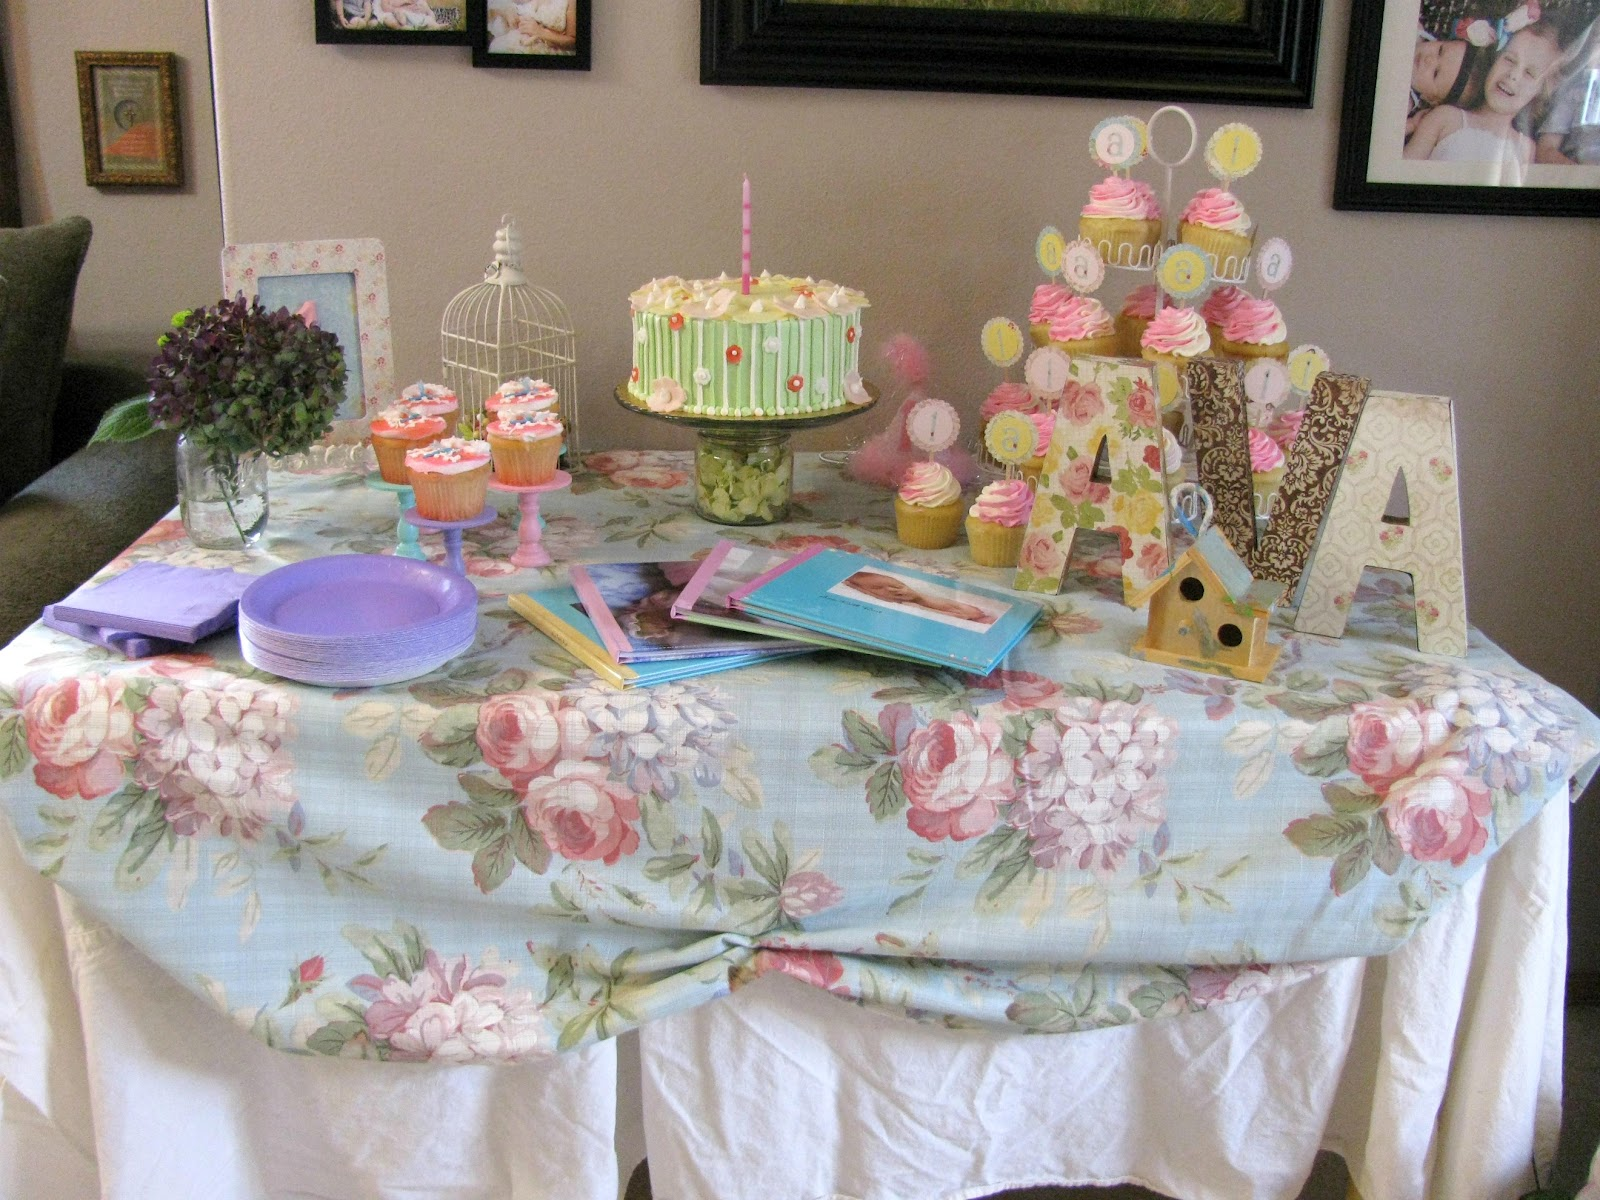 Birthday Cake Table Decoration Ideas : Birthday Cake Table Decorations With Balloons - The House ...